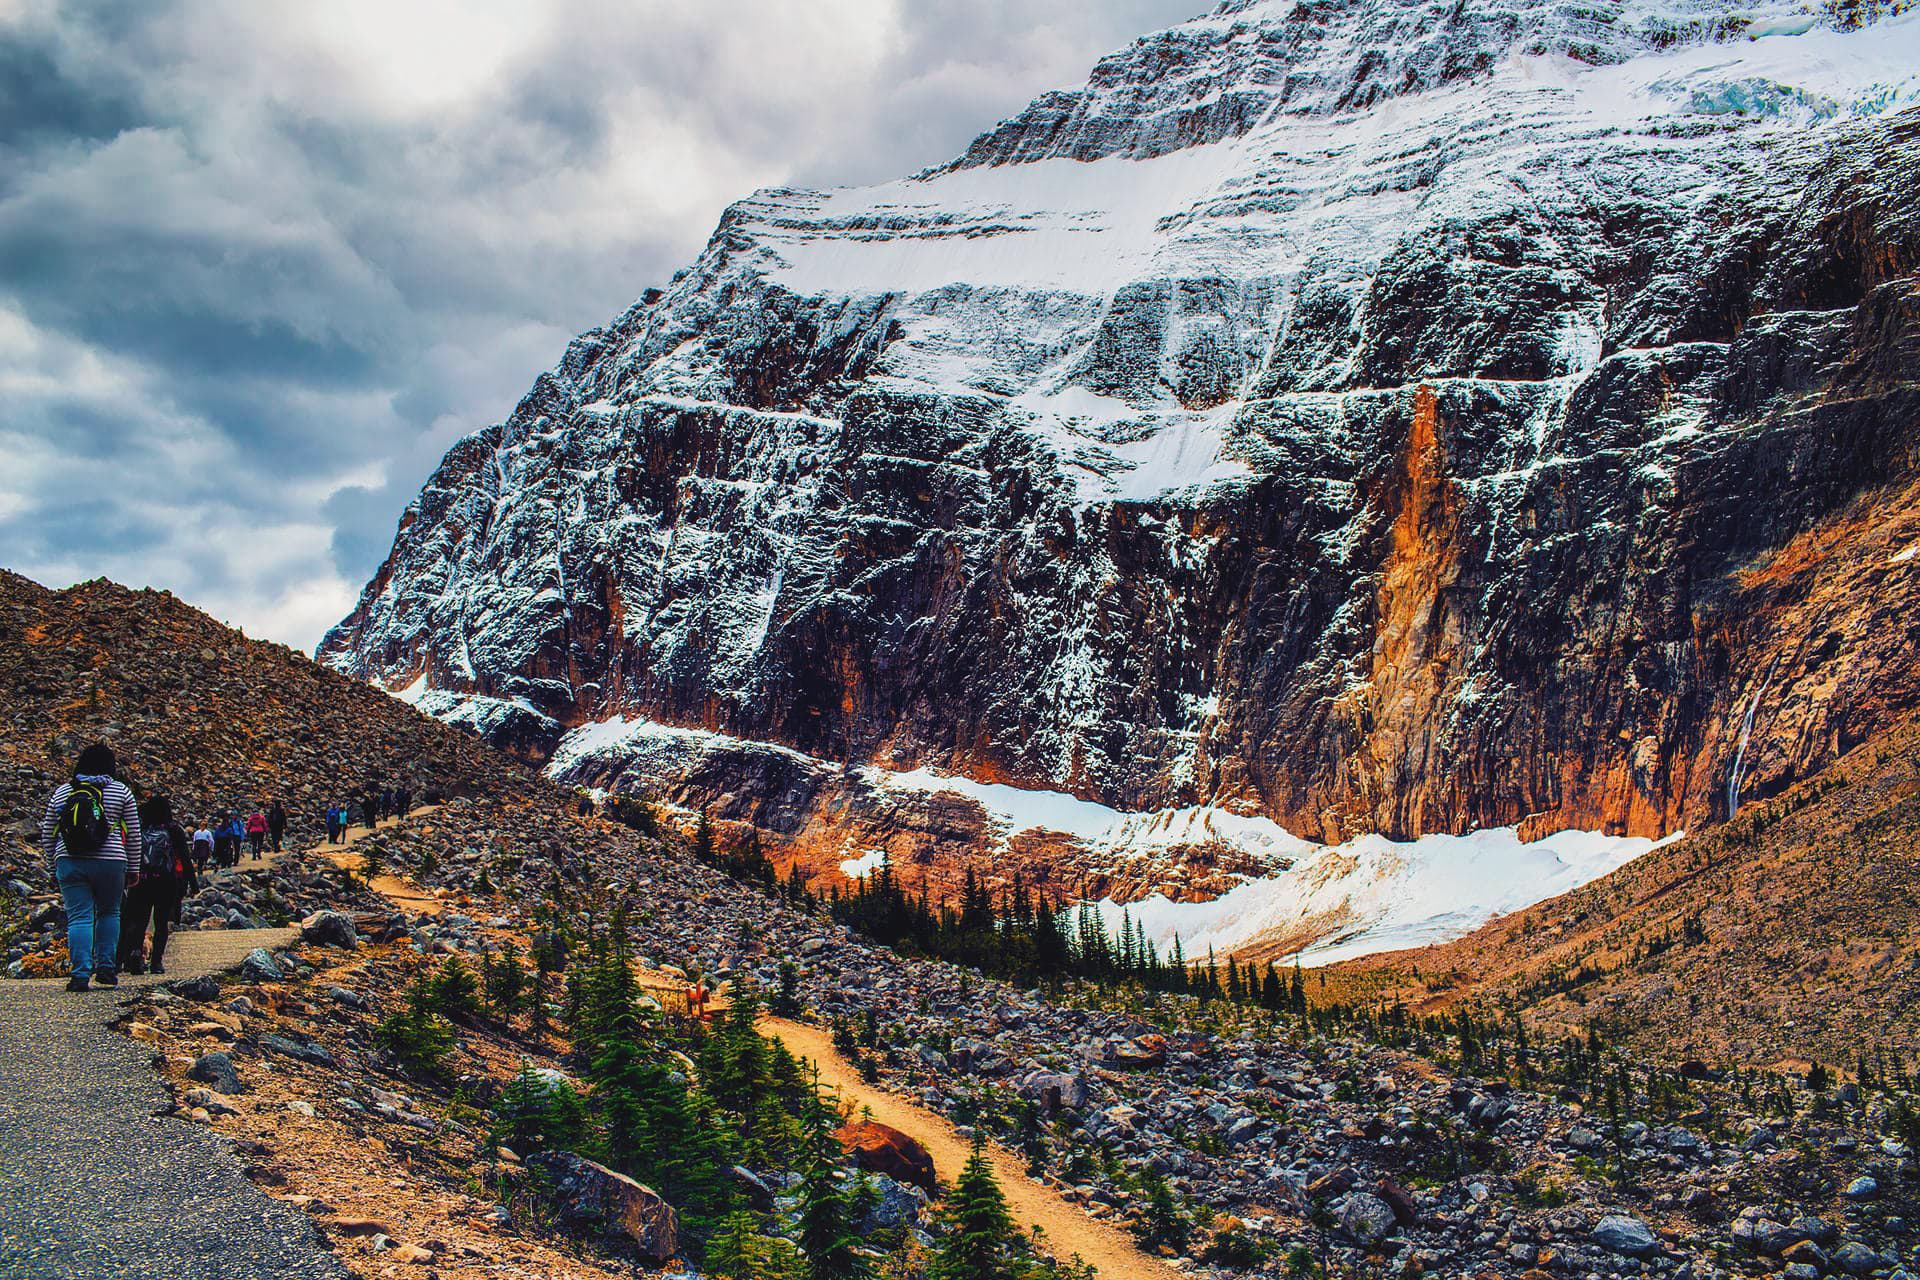 Beginning of the hike at Mount Edith Cavell Alberta Canada